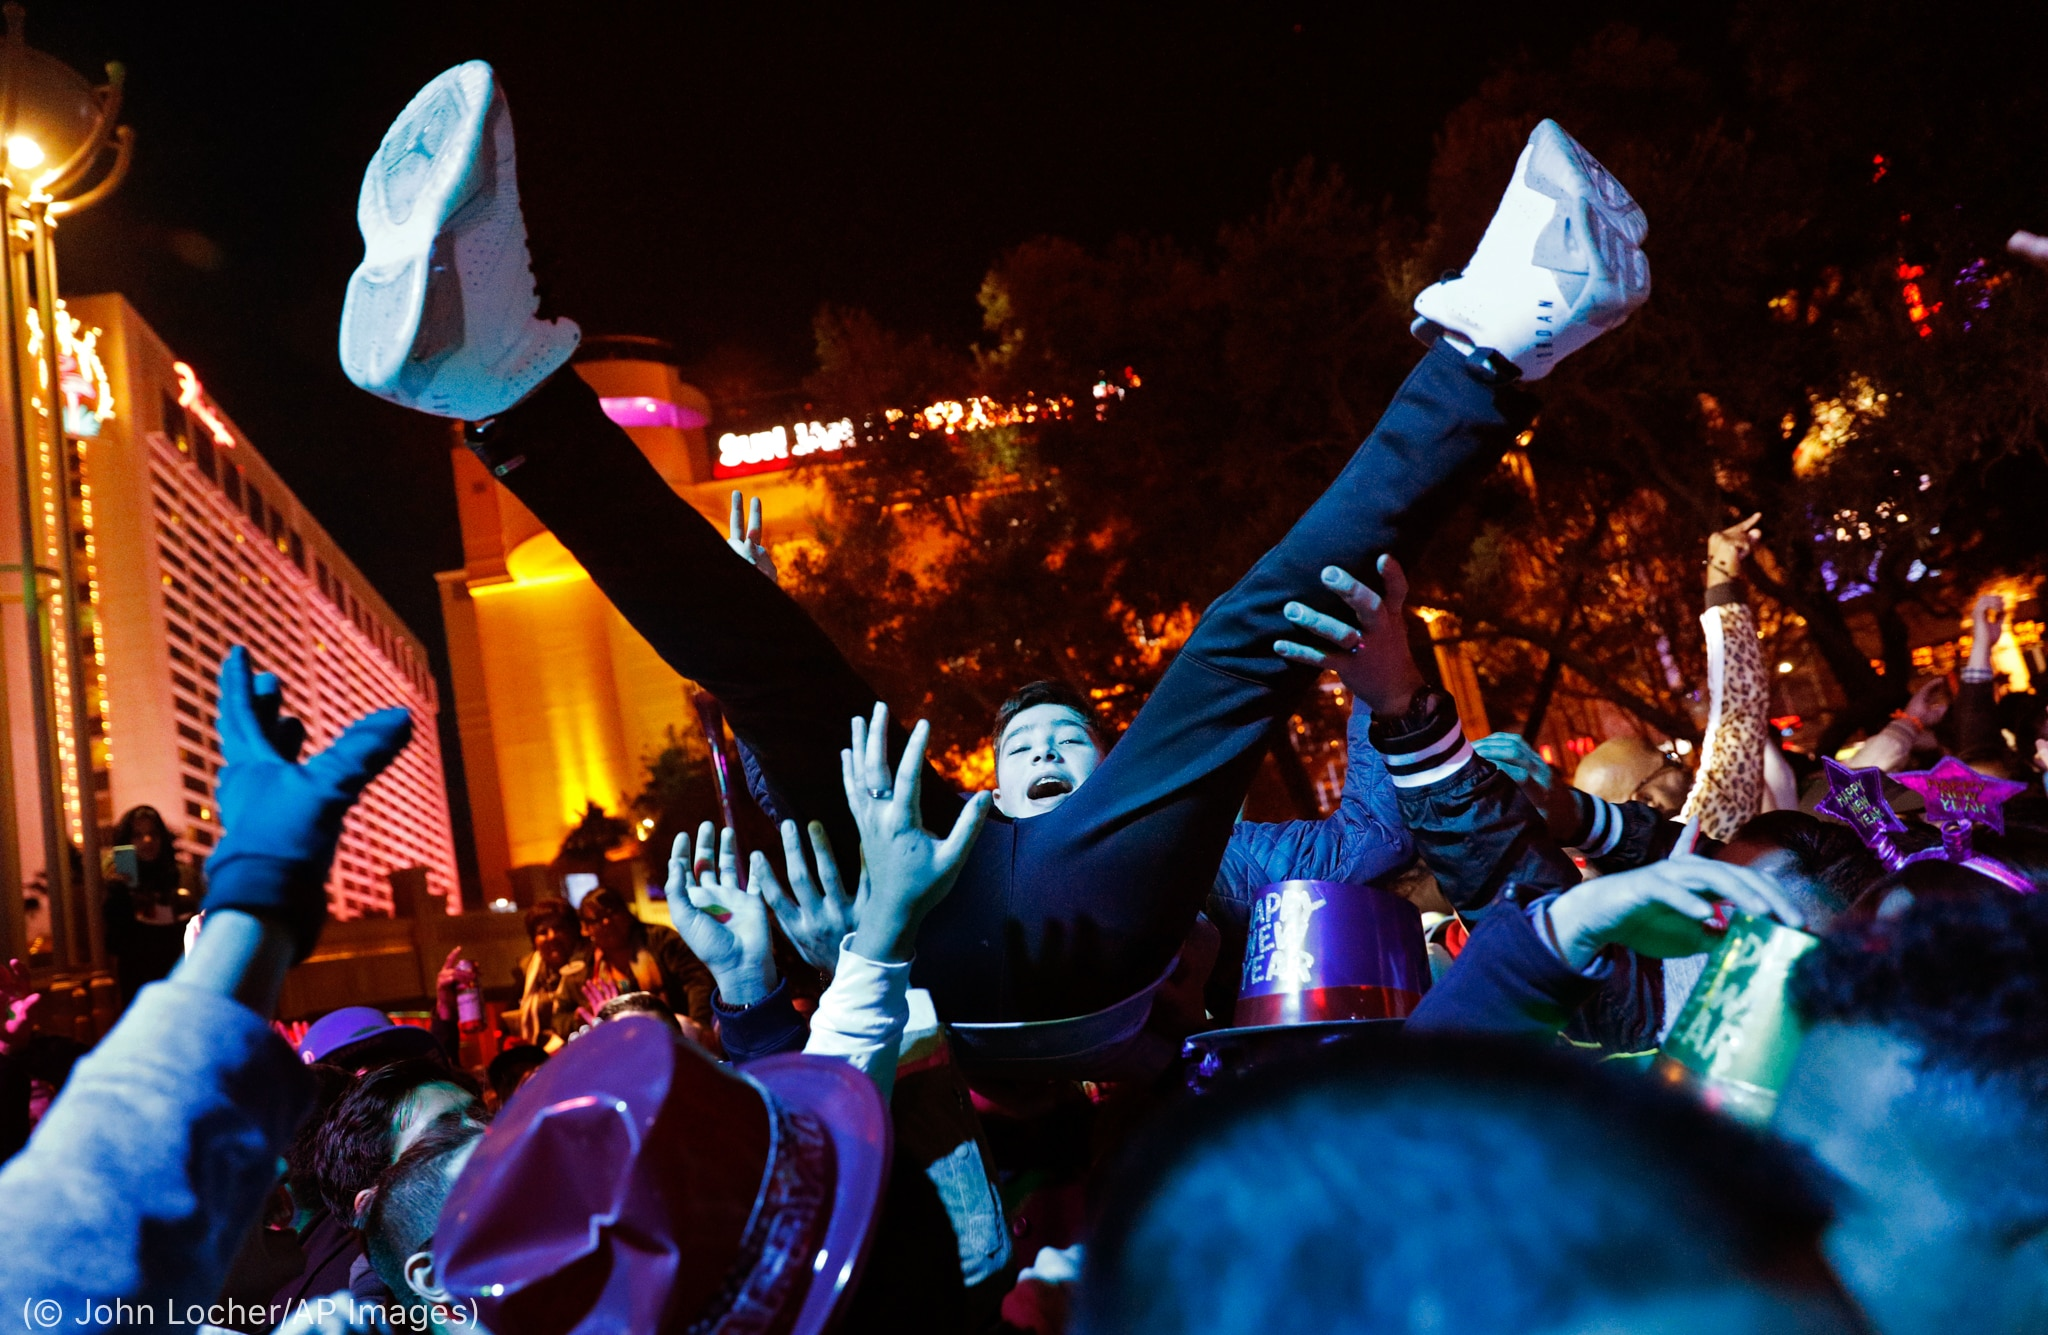 Man being held up in air by others (© John Locher/AP Images)